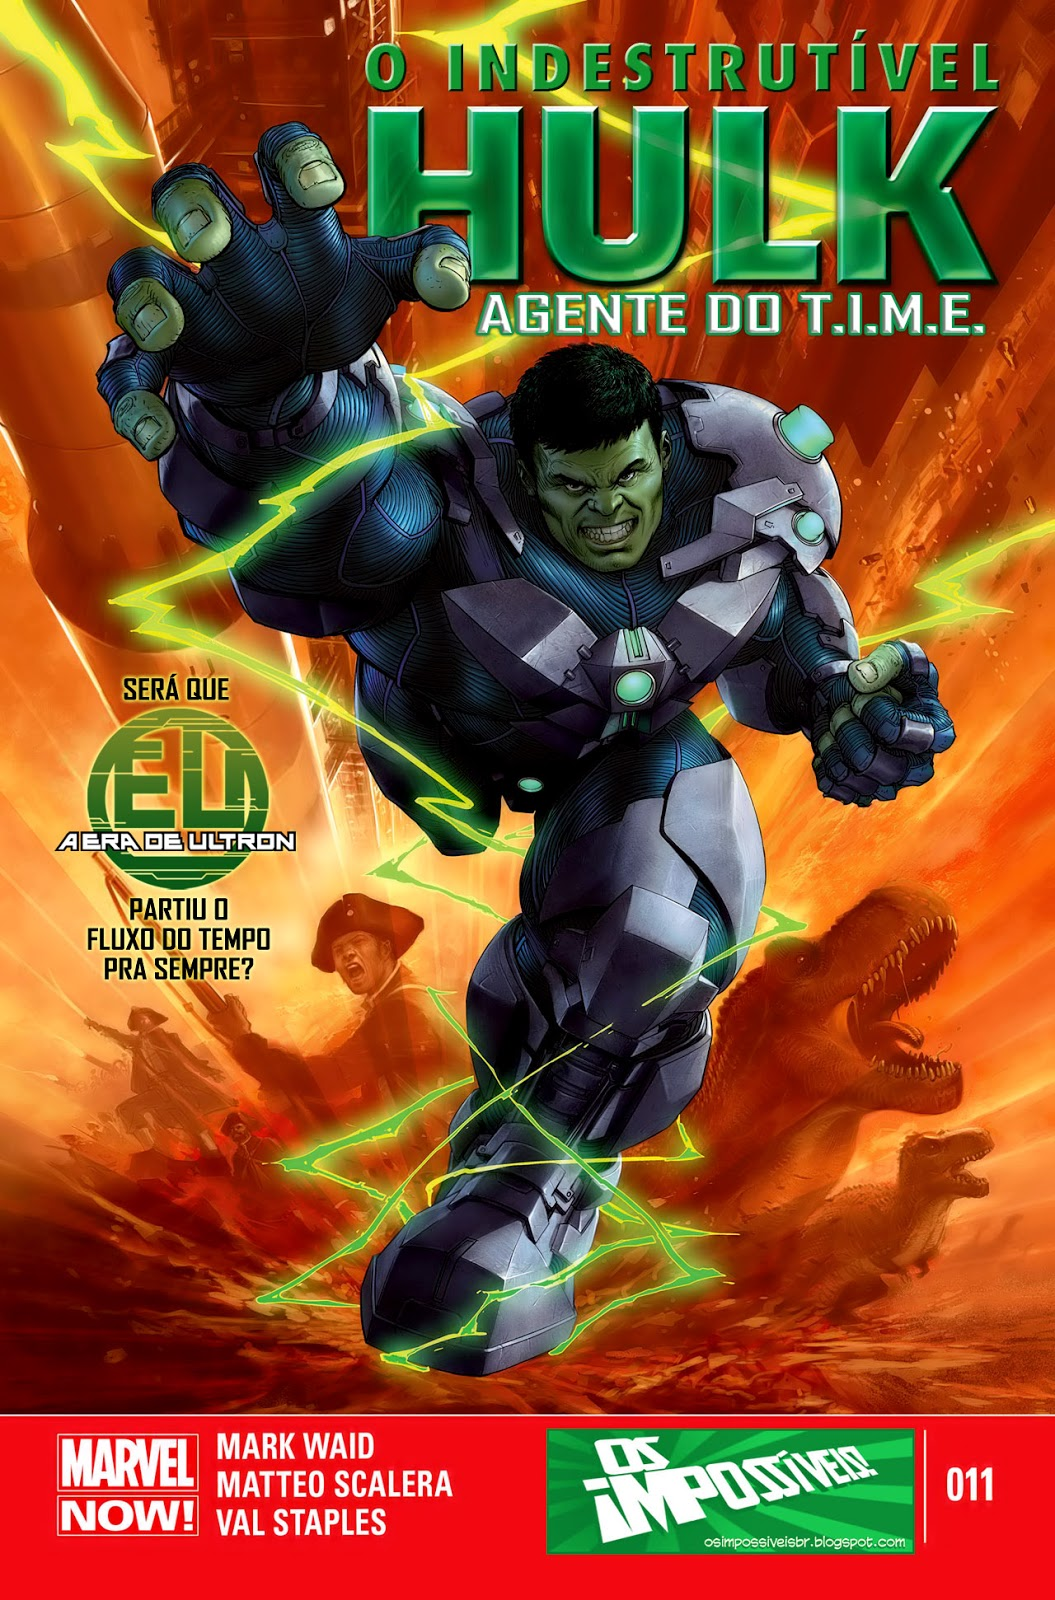 Nova Marvel! O Indestrutível Hulk - Agente do T.I.M.E #11